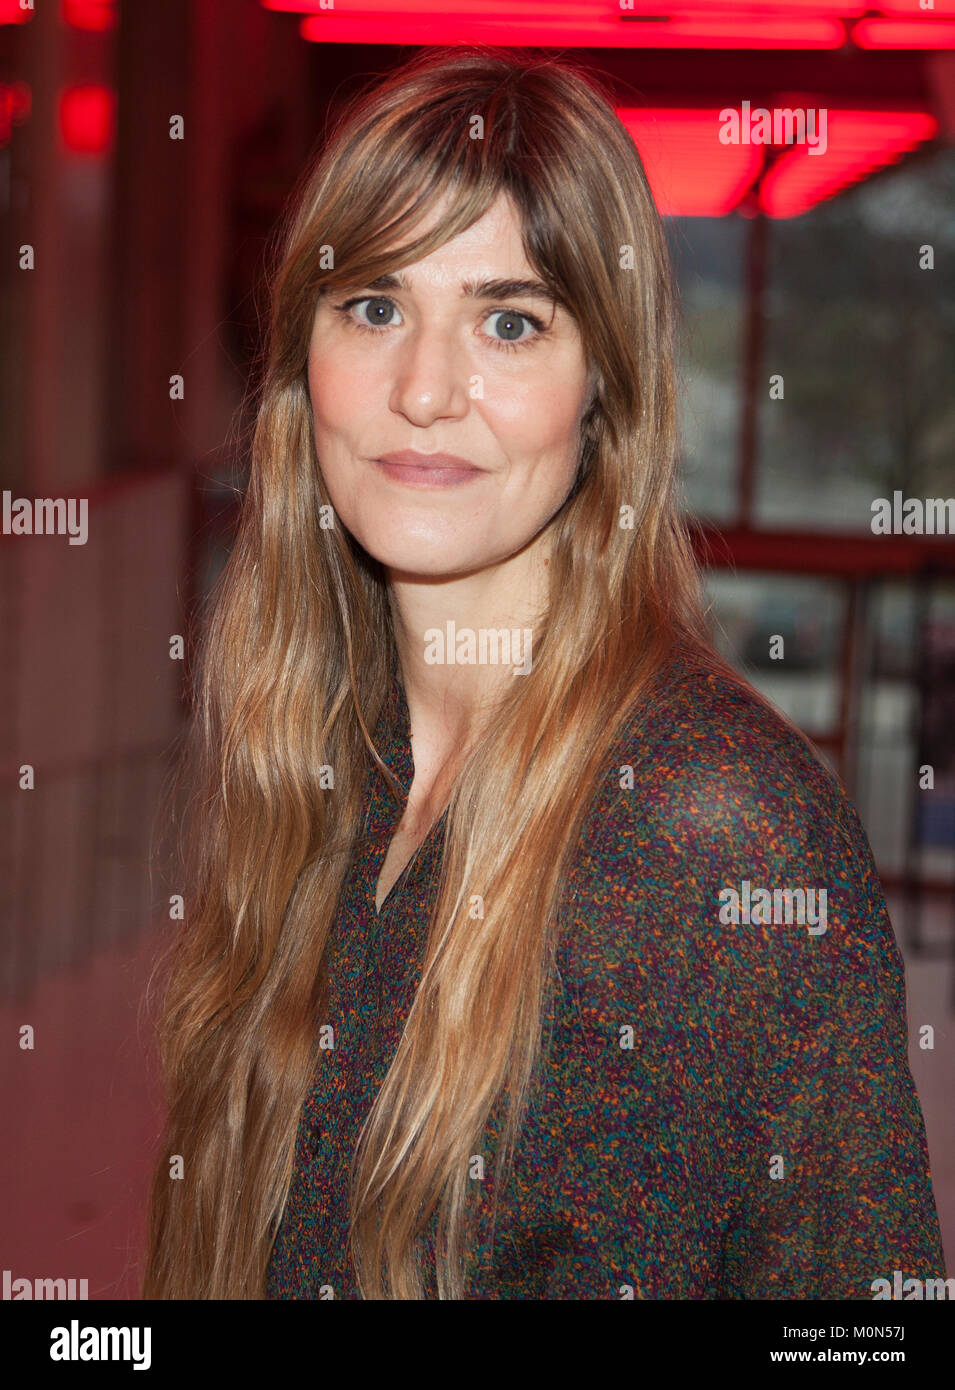 LISA LANGSETH 2018 Swedish filmdirector has mede her first feature in English Euphoria with Alicia Vikander ,Eva - Stock Image